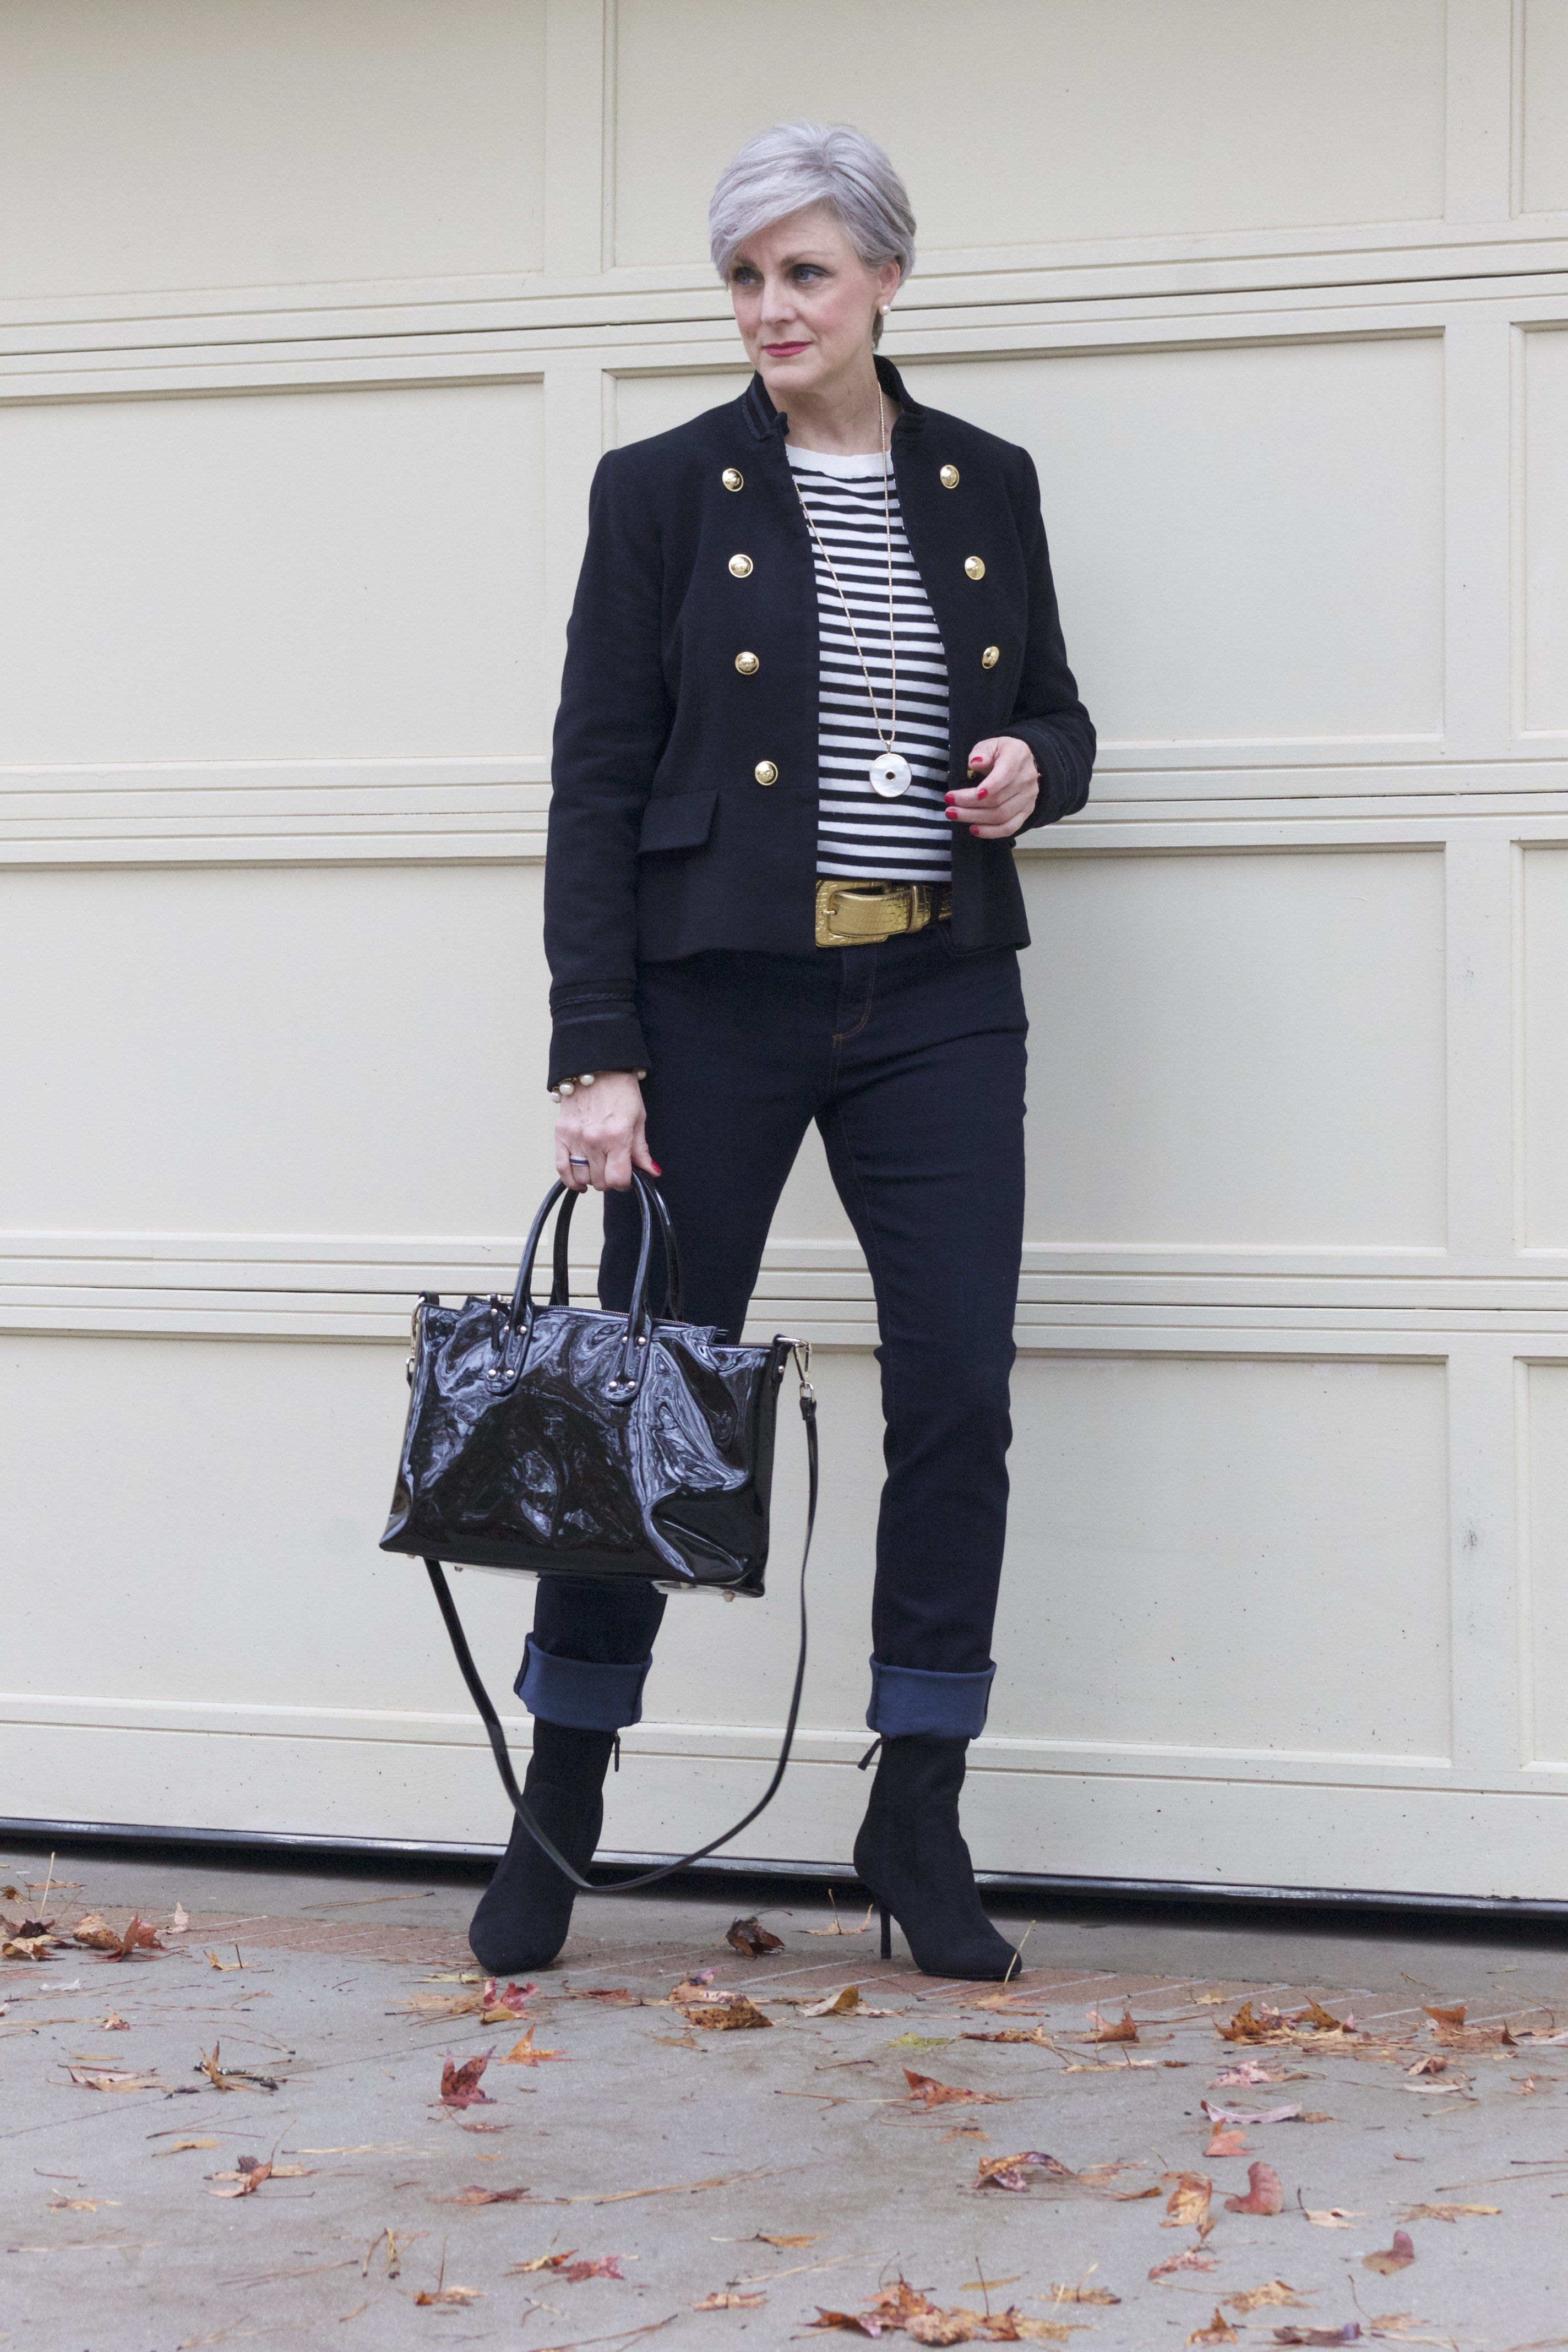 fine and dandy | styleatacertainage